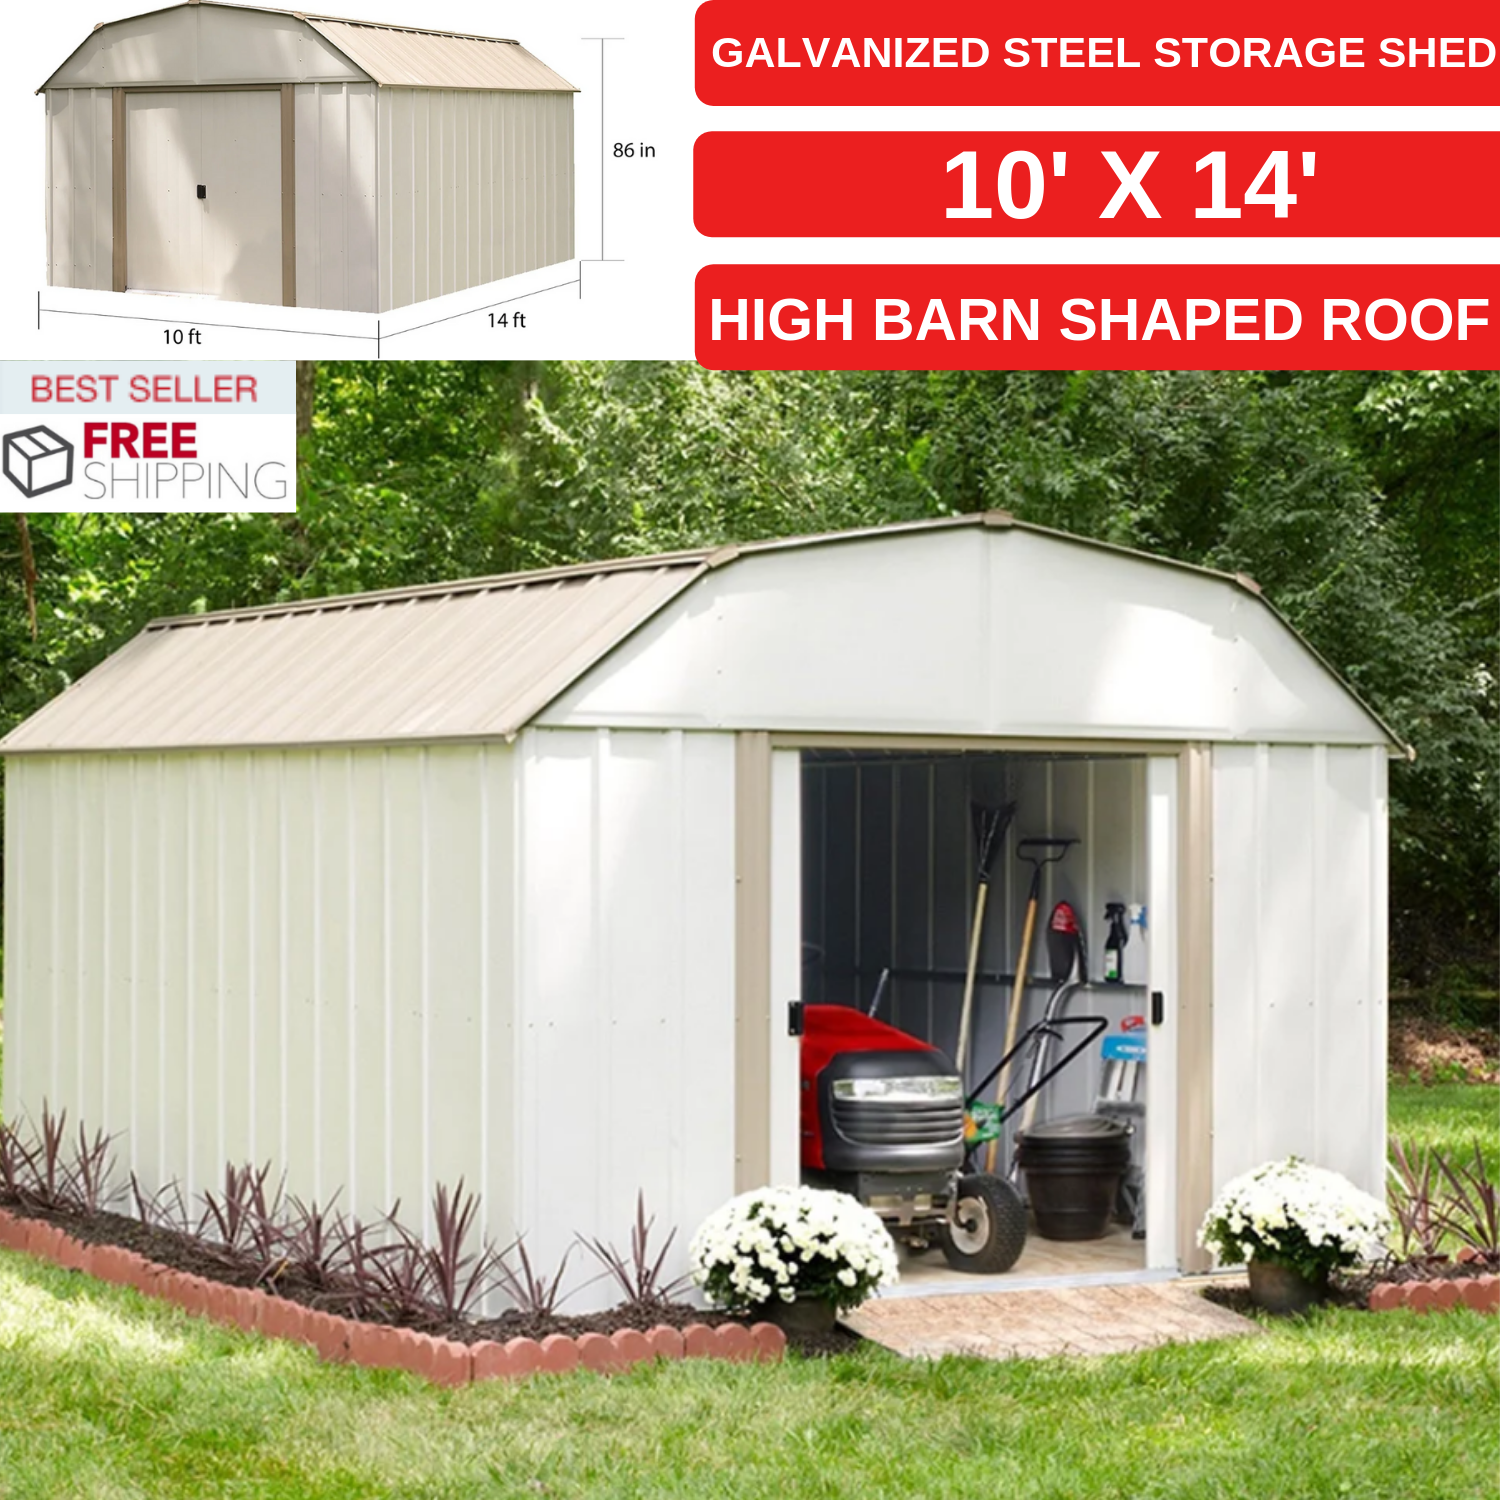 Details About Galvanized Steel Storage Shed 10 X 14 With High Barn Shaped Roof For Outdoor Steel Storage Sheds Storage Shed Galvanized Steel